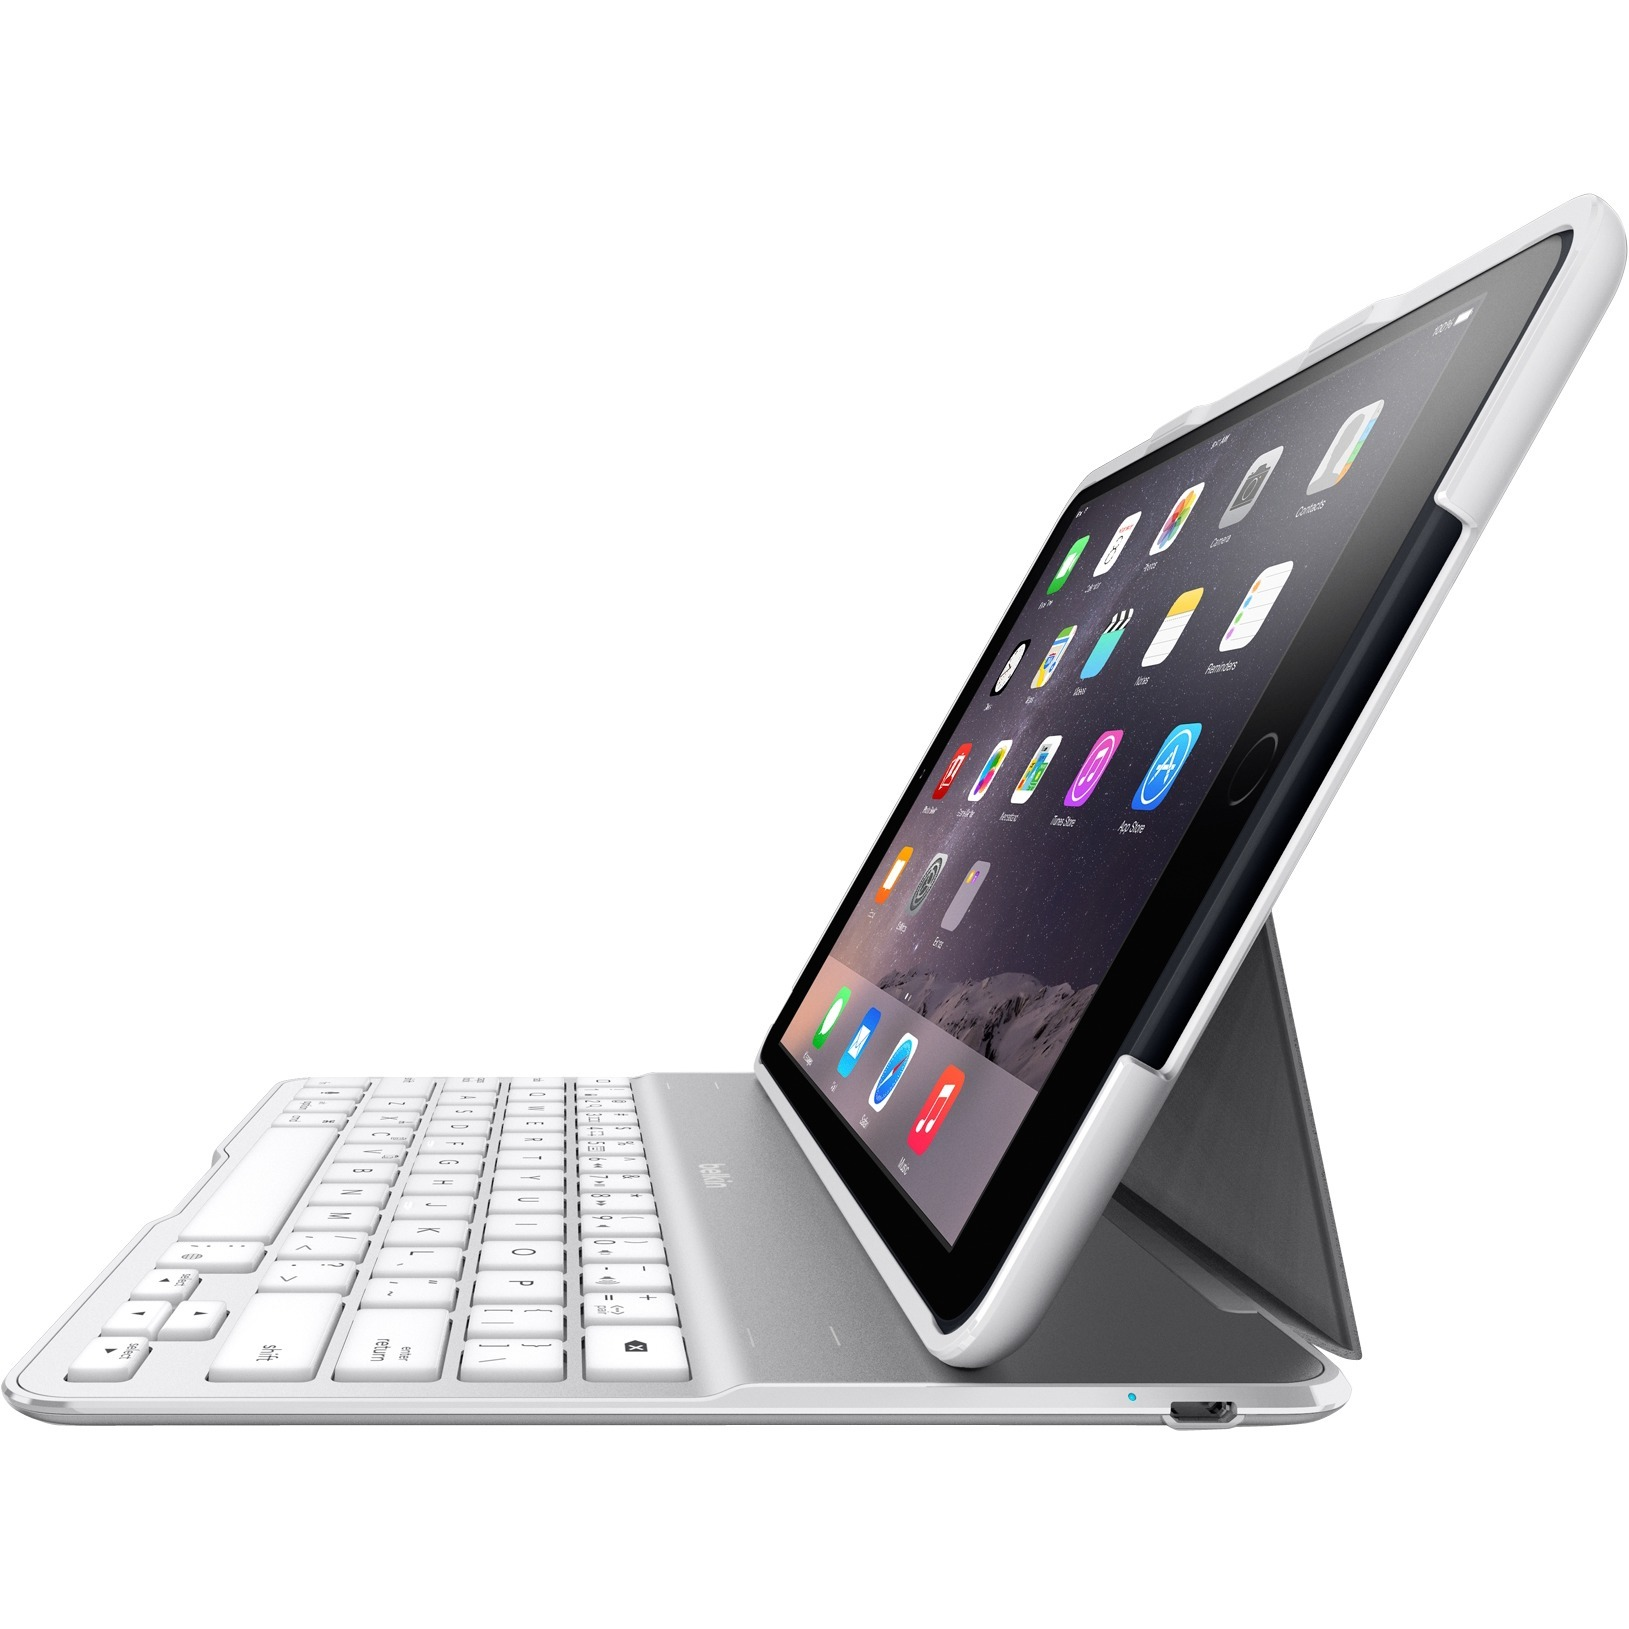 Belkin QODE Ultimate Keyboard/Cover Case Folio for iPad, iPad Air - White